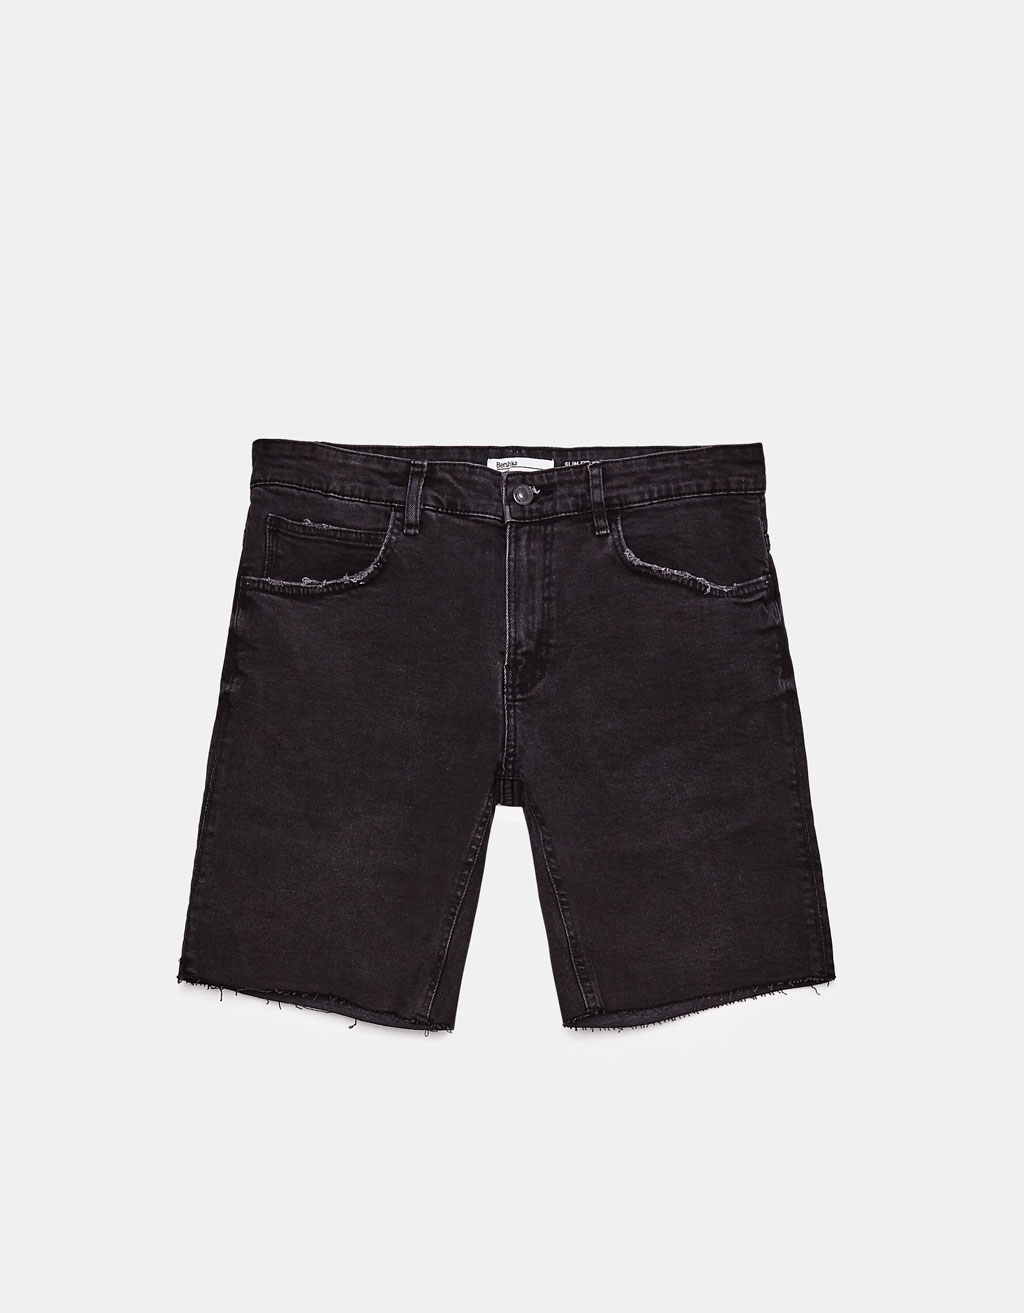 Denim slim fit comfort bermuda